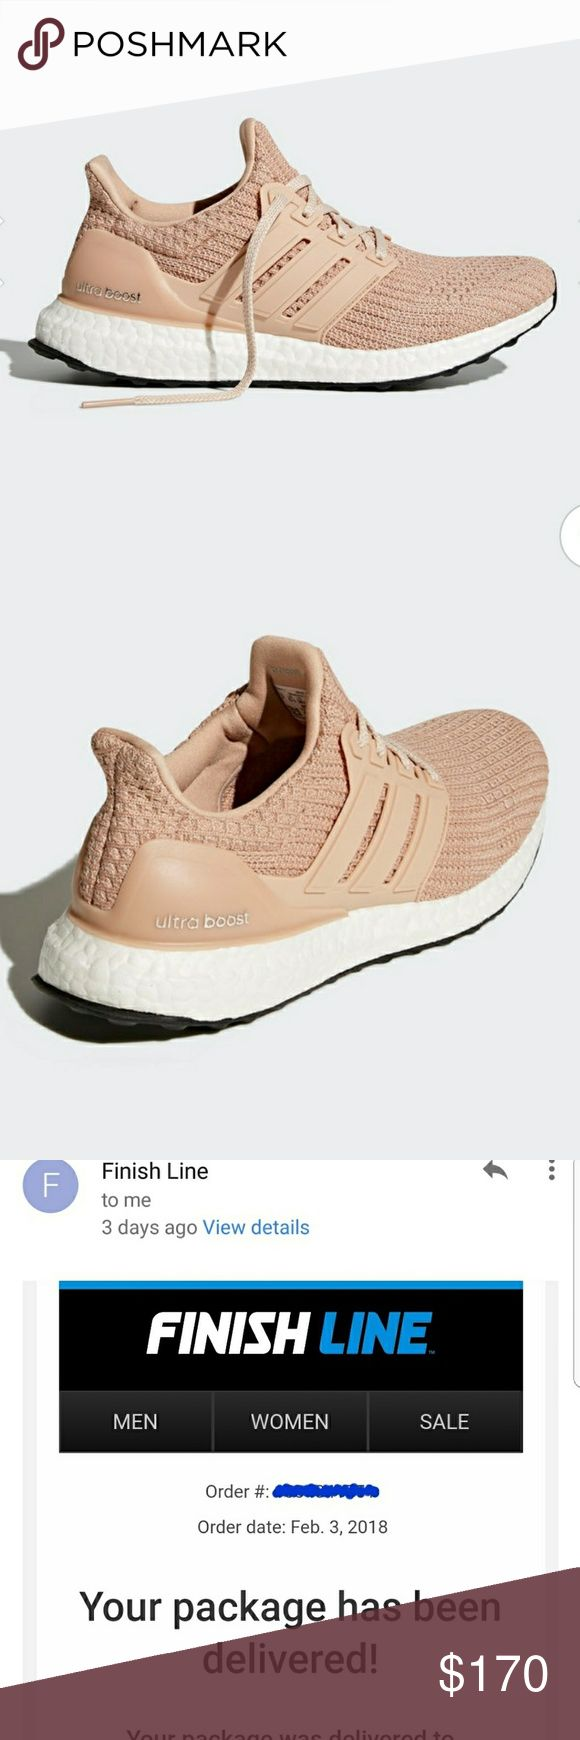 Adidas ultra boost womens size 6.5 Ash Pearl color Adidas ultra boost womens size 6.5 Ash Pearl color.  Just bought these a few days ago. Just a bit too small for me. Too bad accidentally threw the box away so I can't return ☹.  I've worn them only twice.   LOVE everything about these!!  Selling so I can re-order the same color just a bigger size. adidas Shoes Sneakers